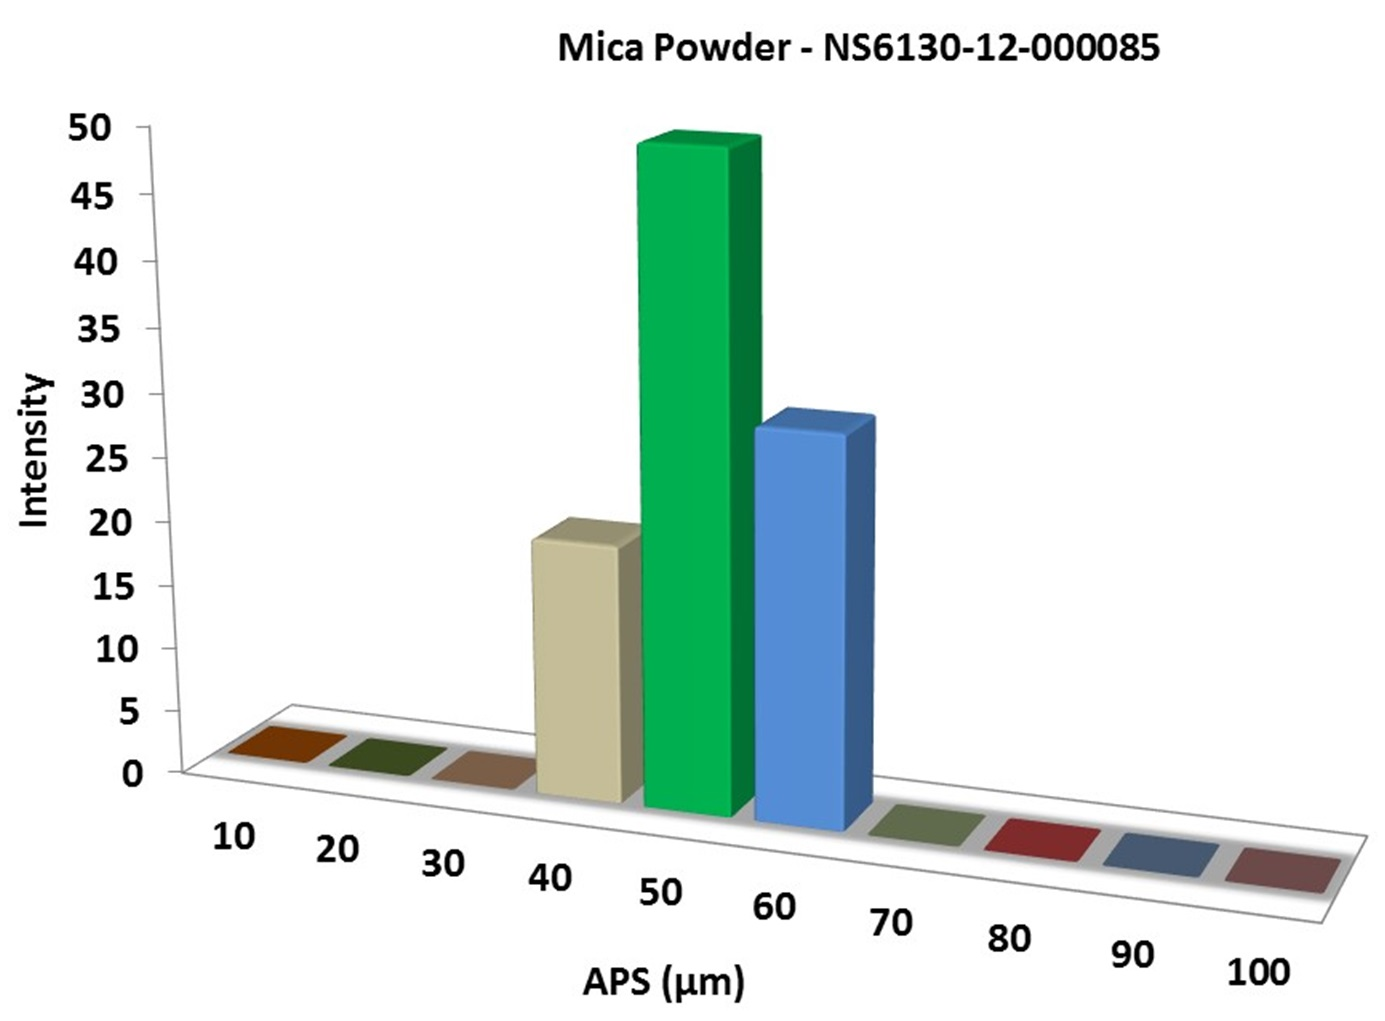 Particles Size Analysis - Mica Powder